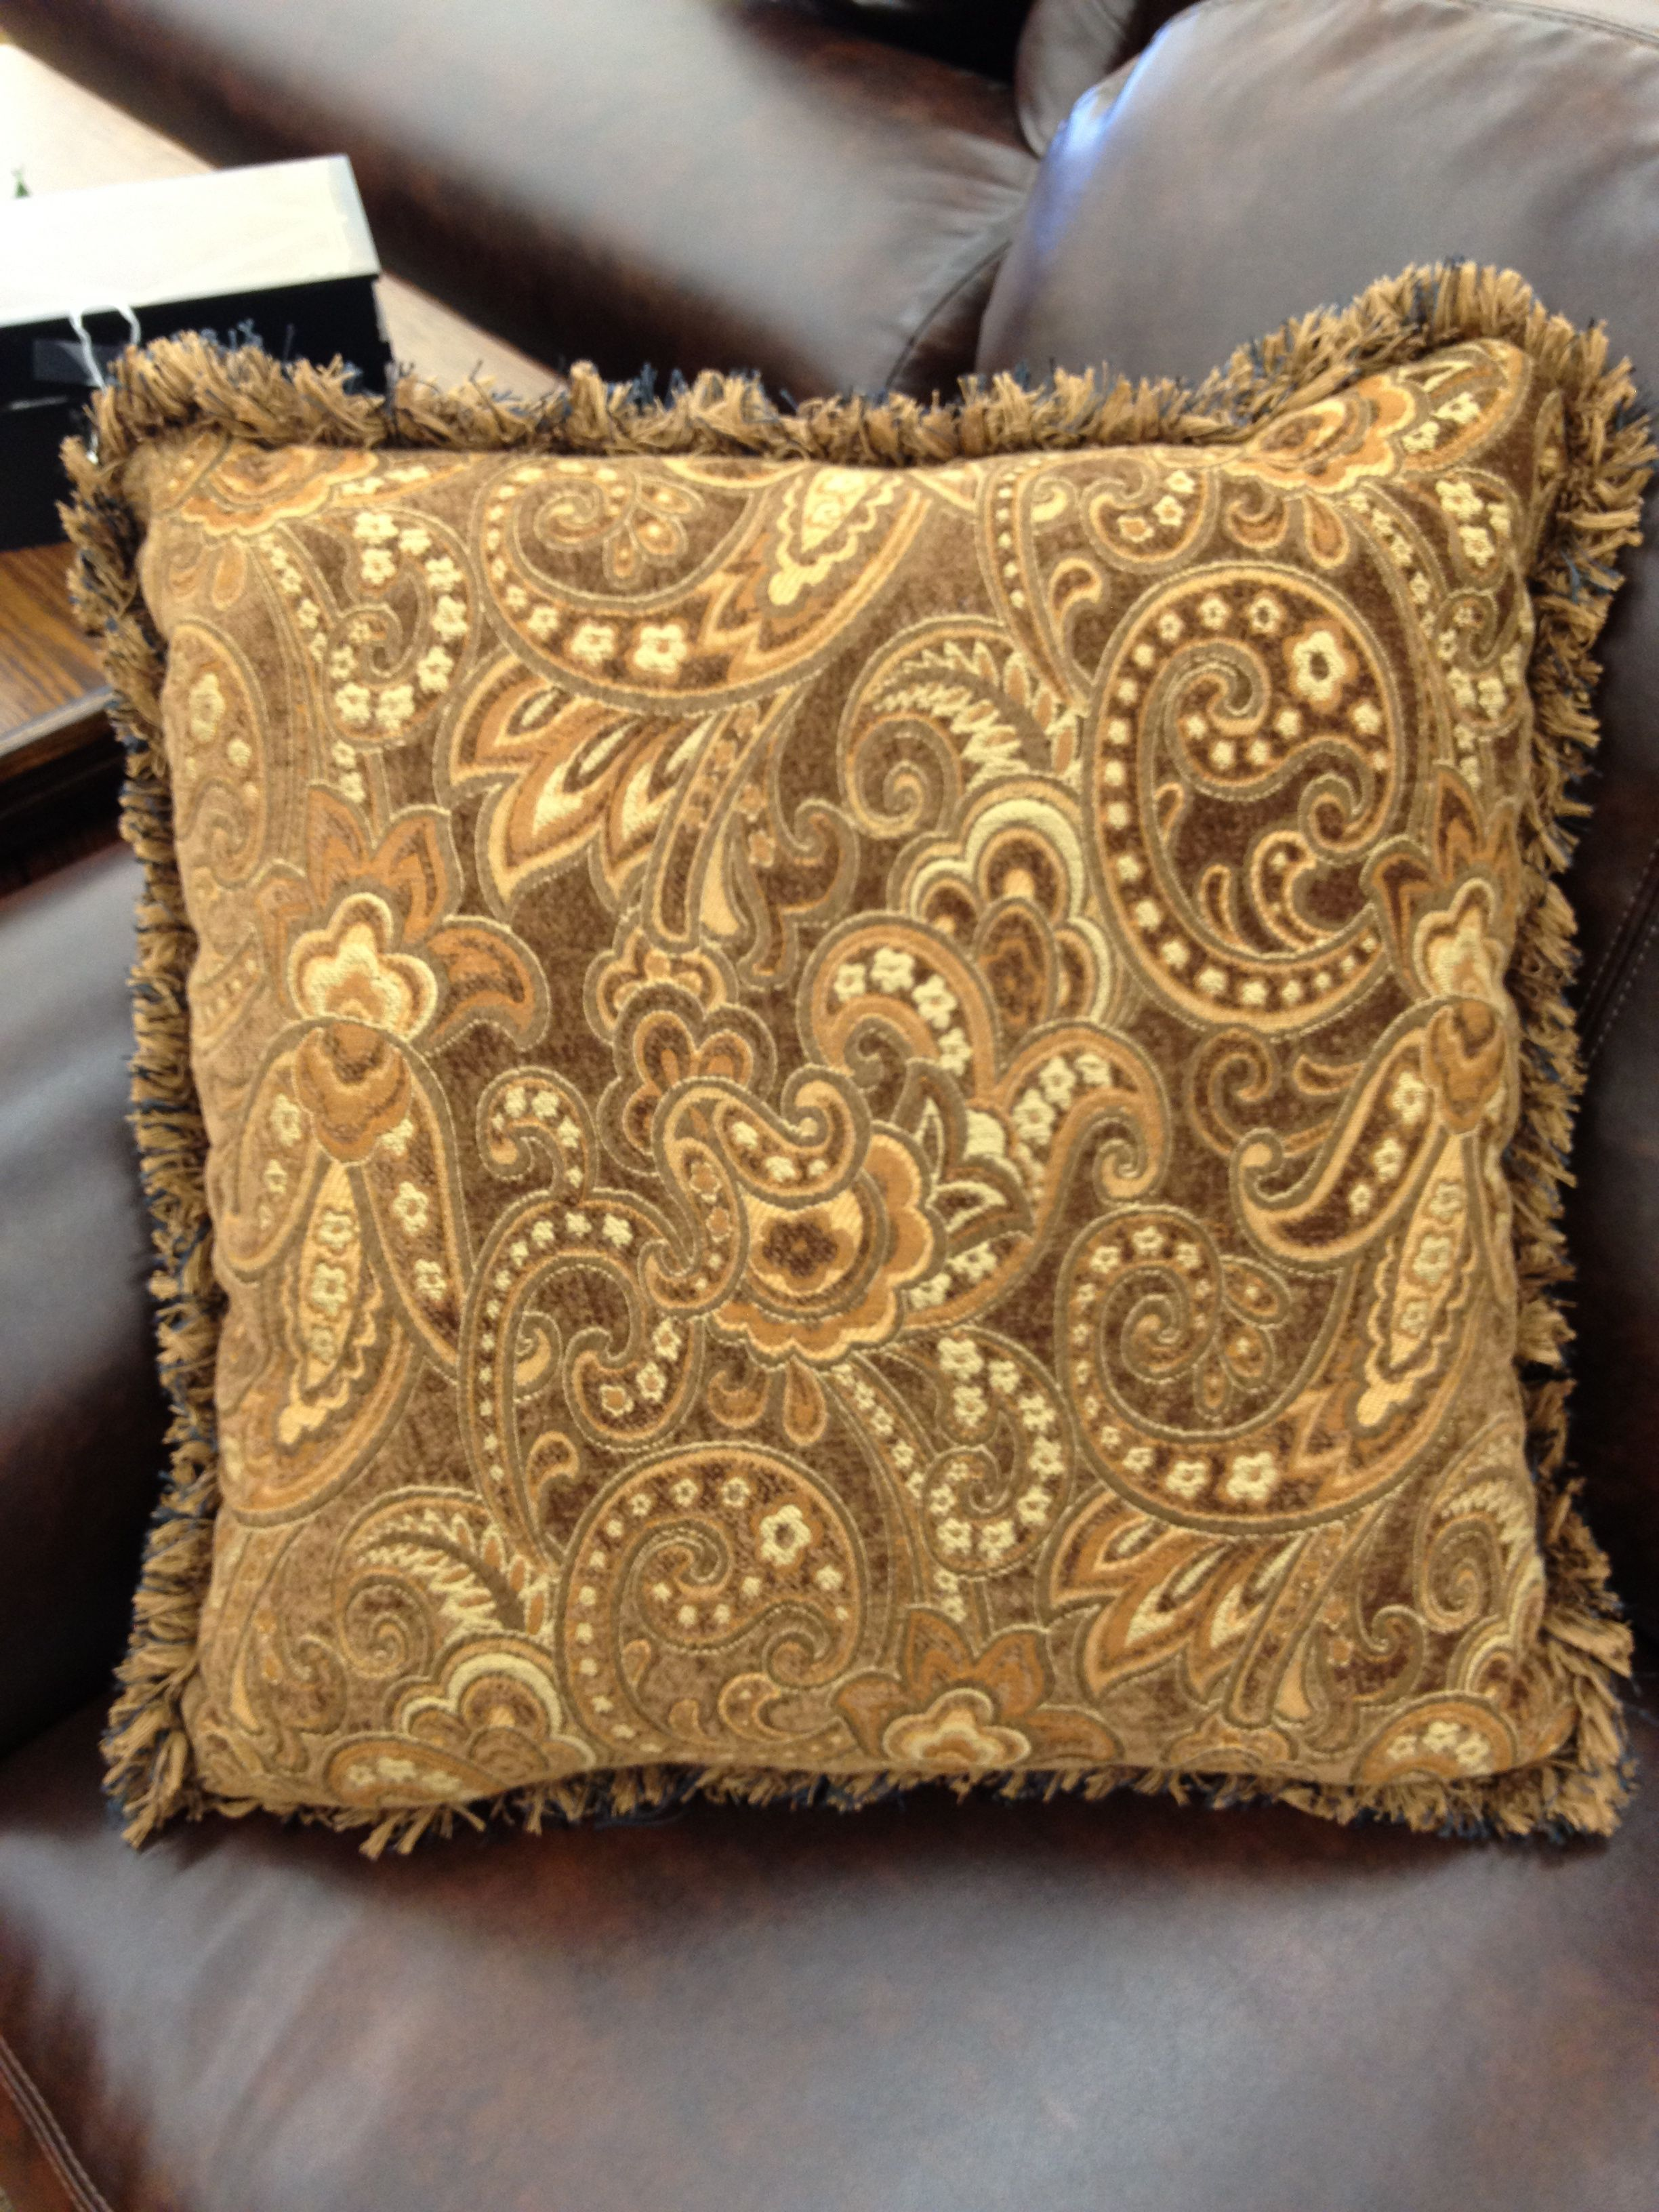 Paisley brown patterned throw pillow with fringe.